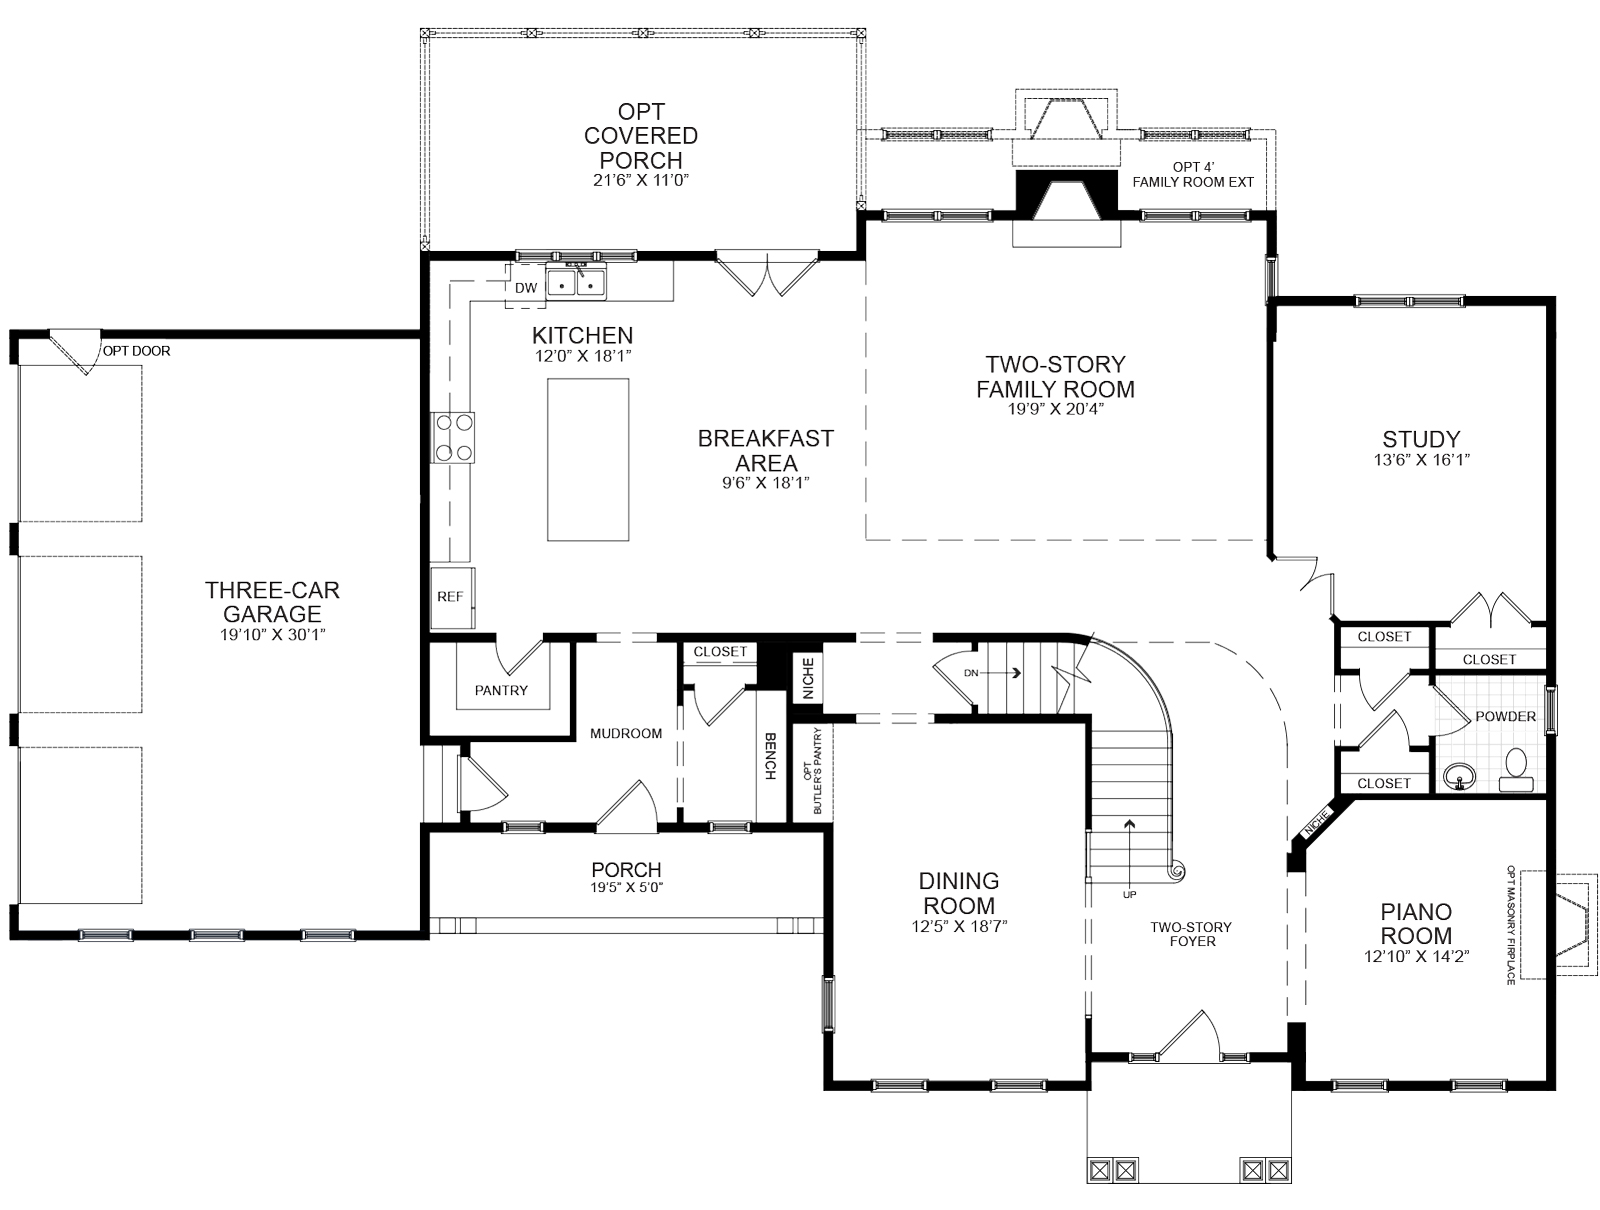 First floor plan of home proposed for 13316 Manor Stone Dr.